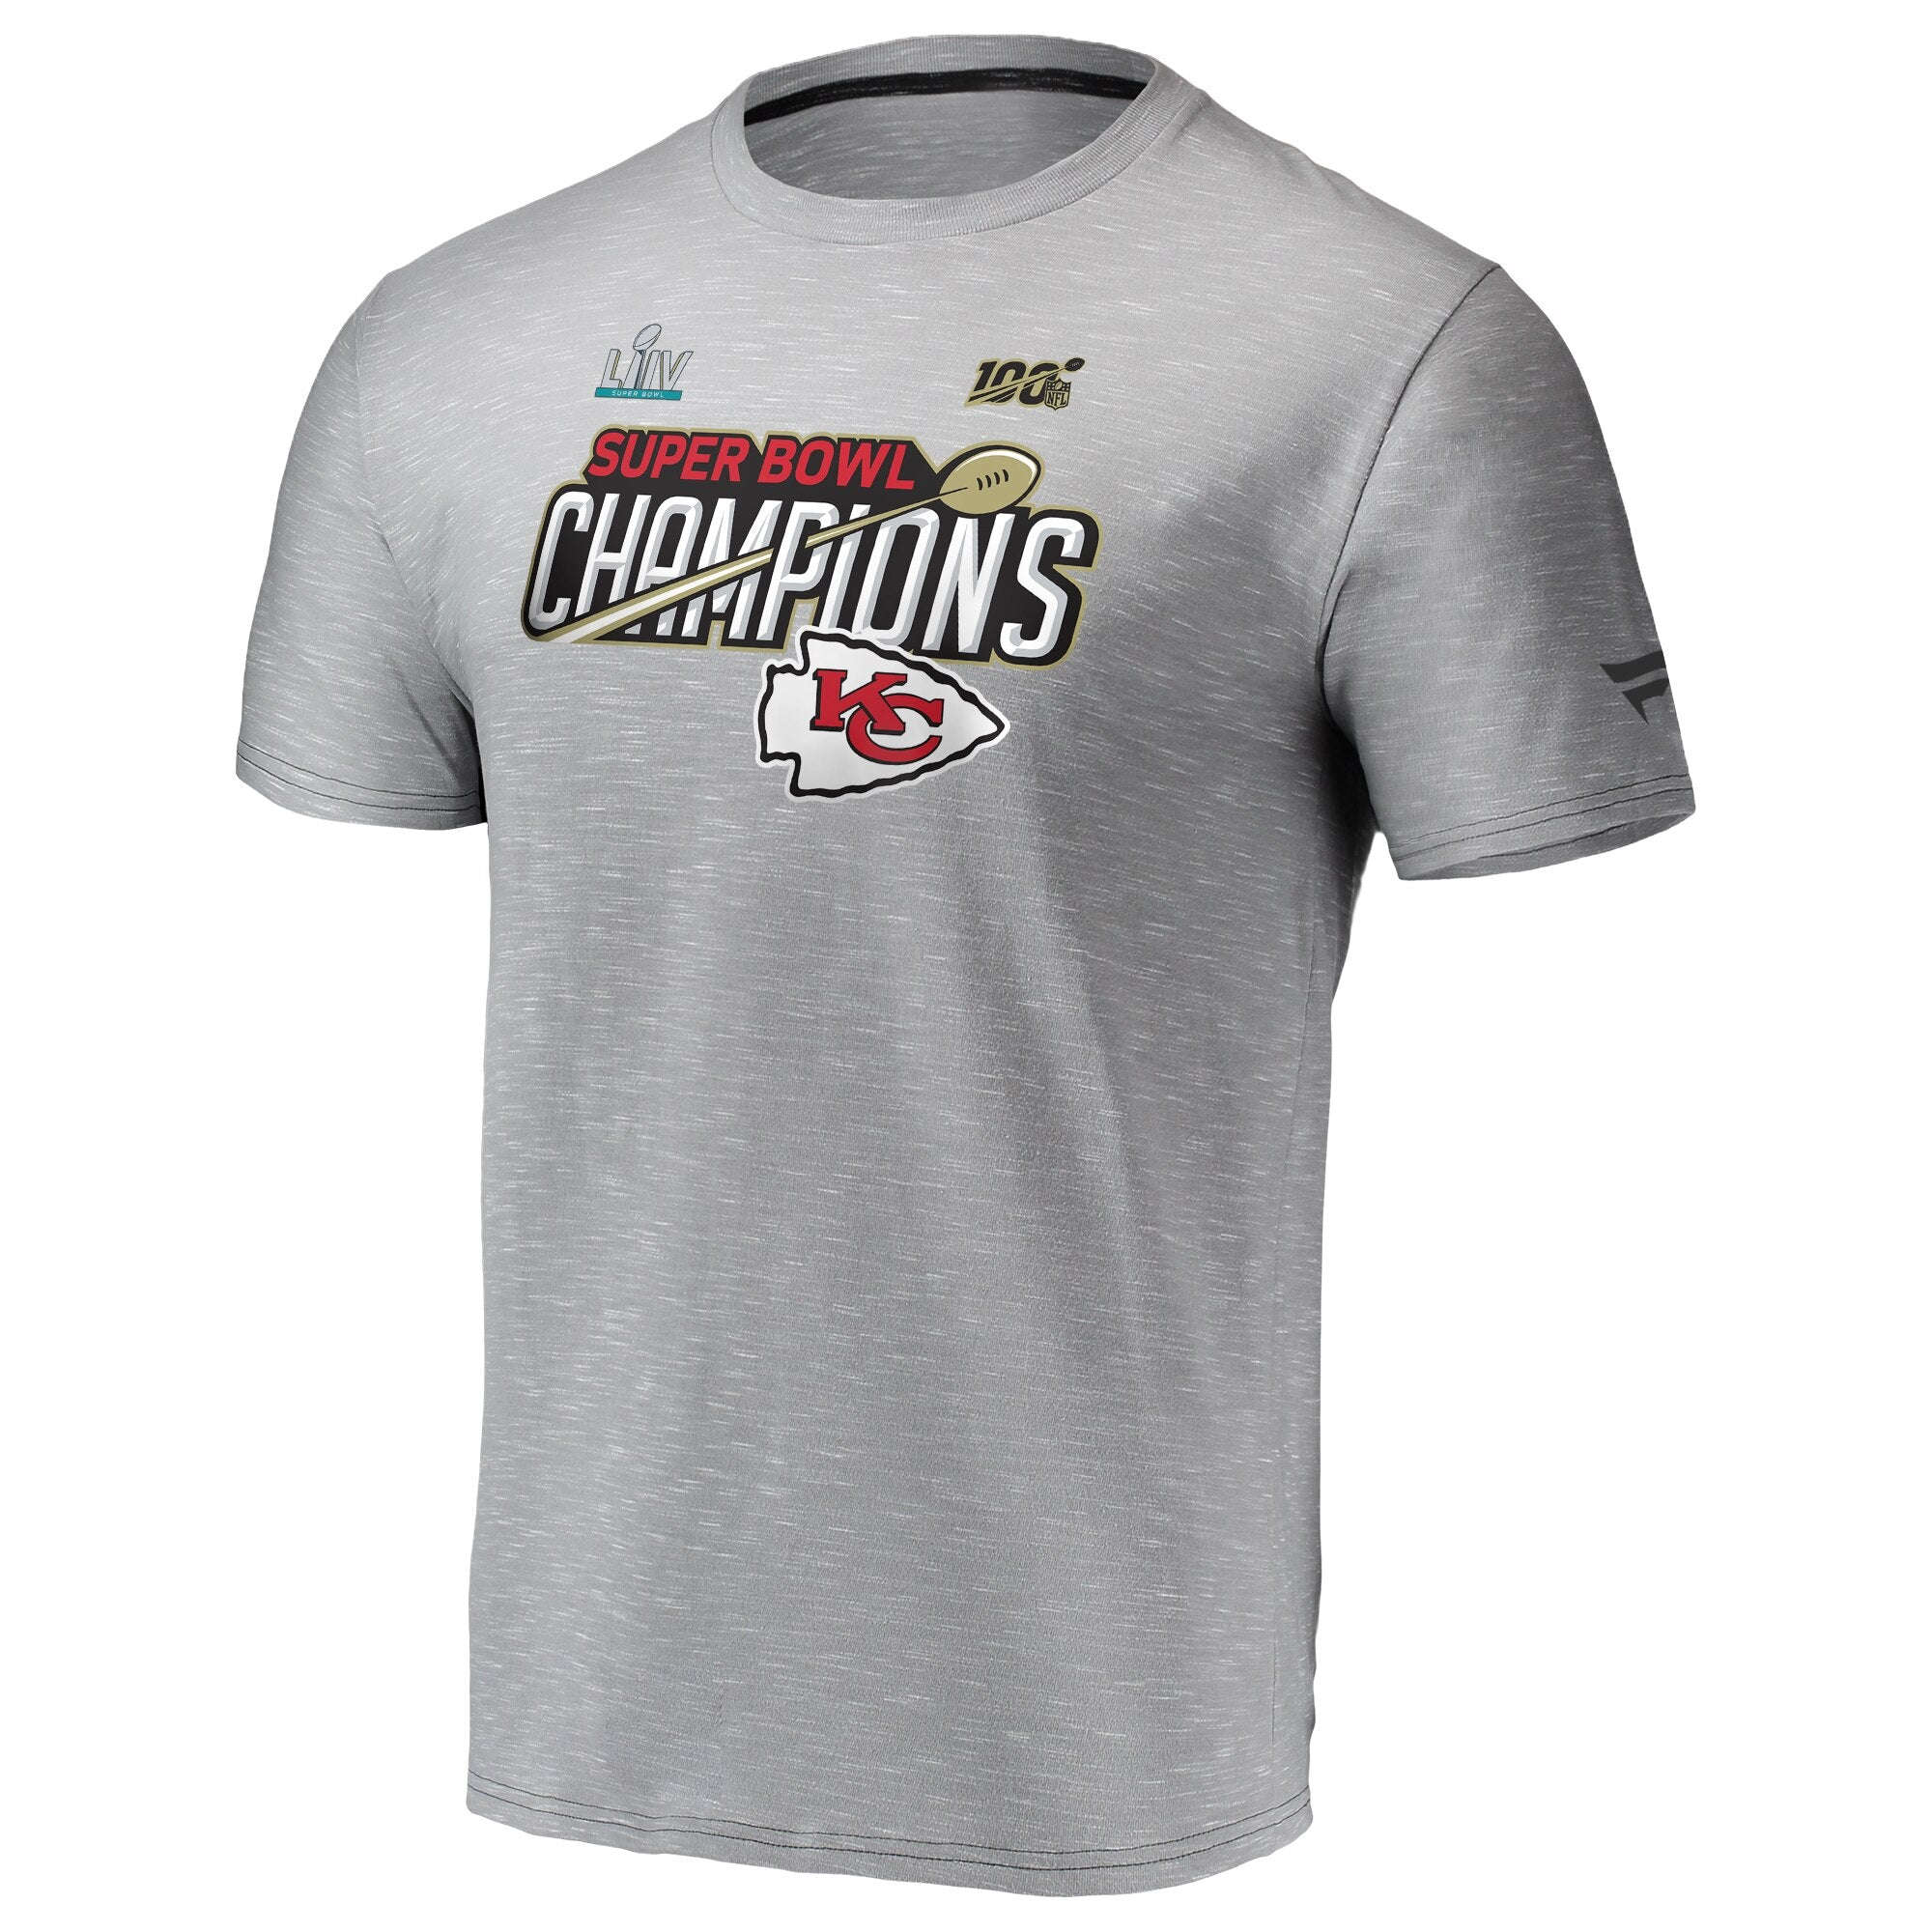 Super Bowl Championship Shirt | Chiefs Super Bowl